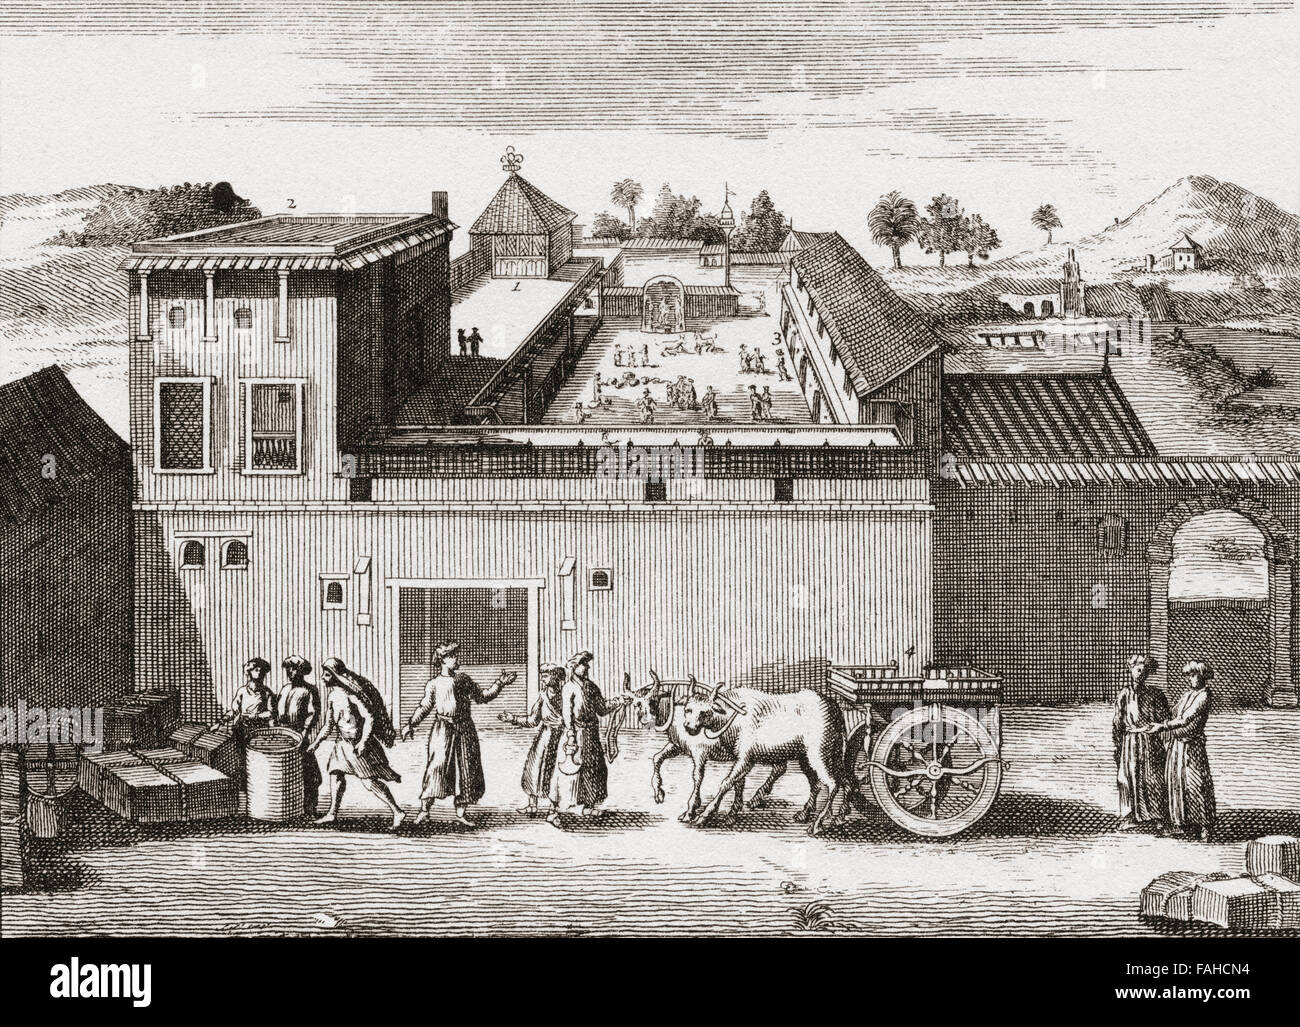 East India Company Stock Photos & East India Company Stock Images